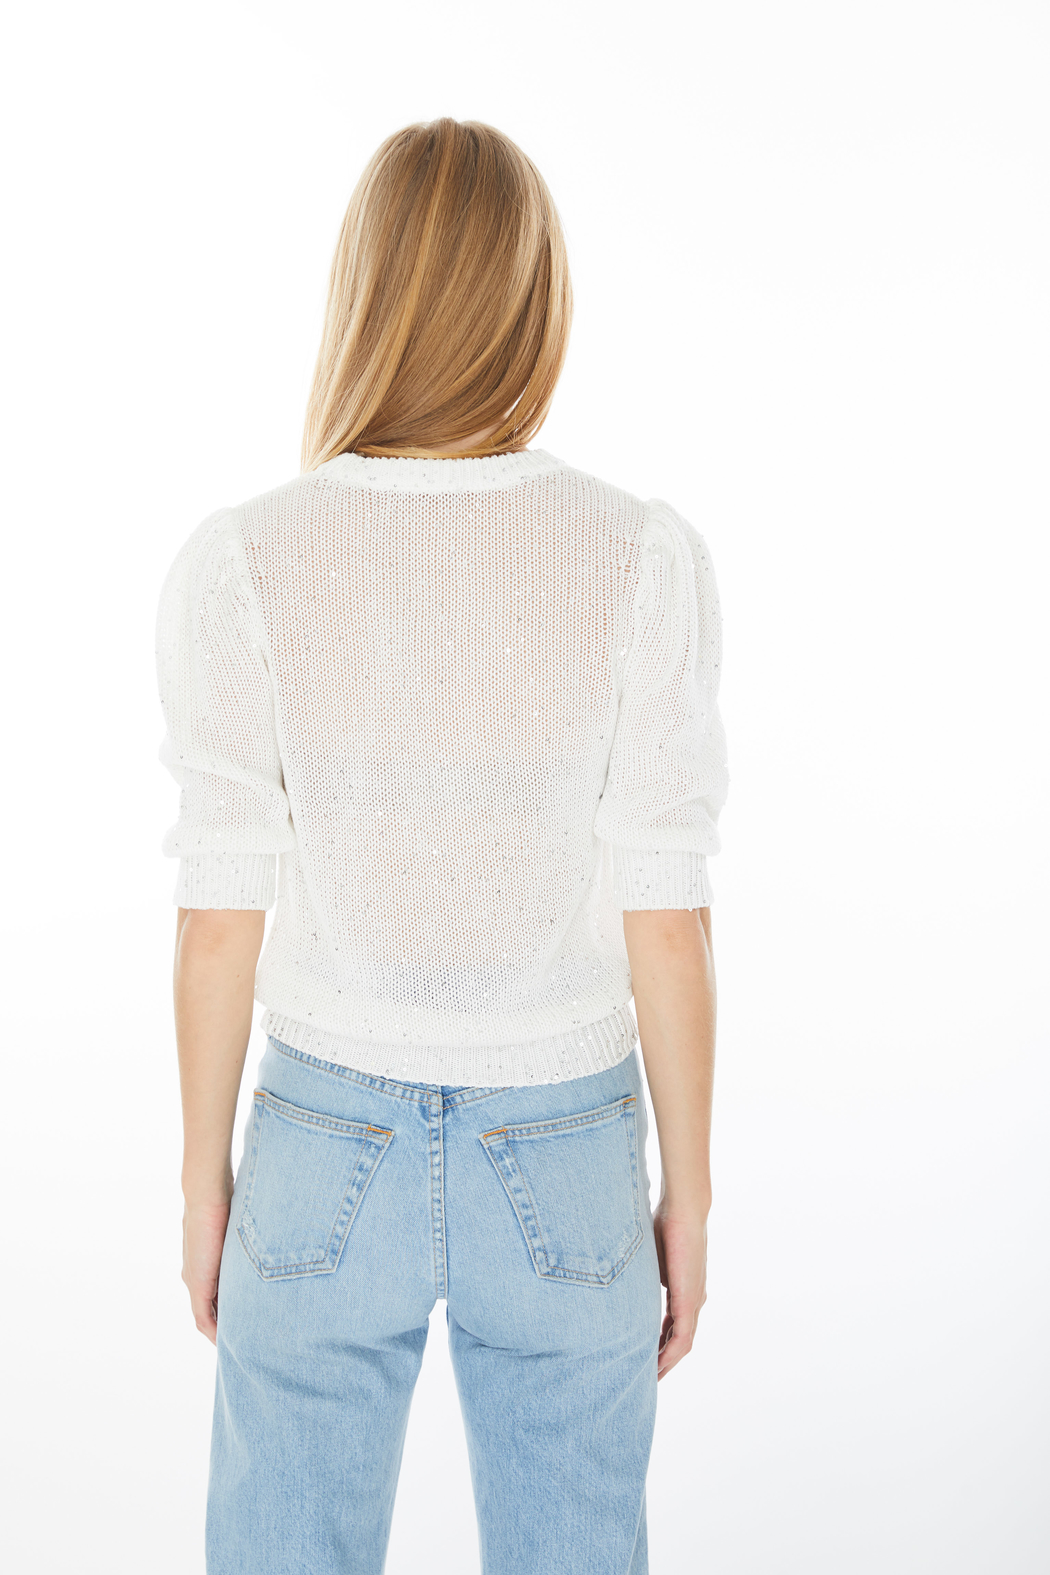 Generation Love  Mia Sequin Sweater - Back Cropped Image